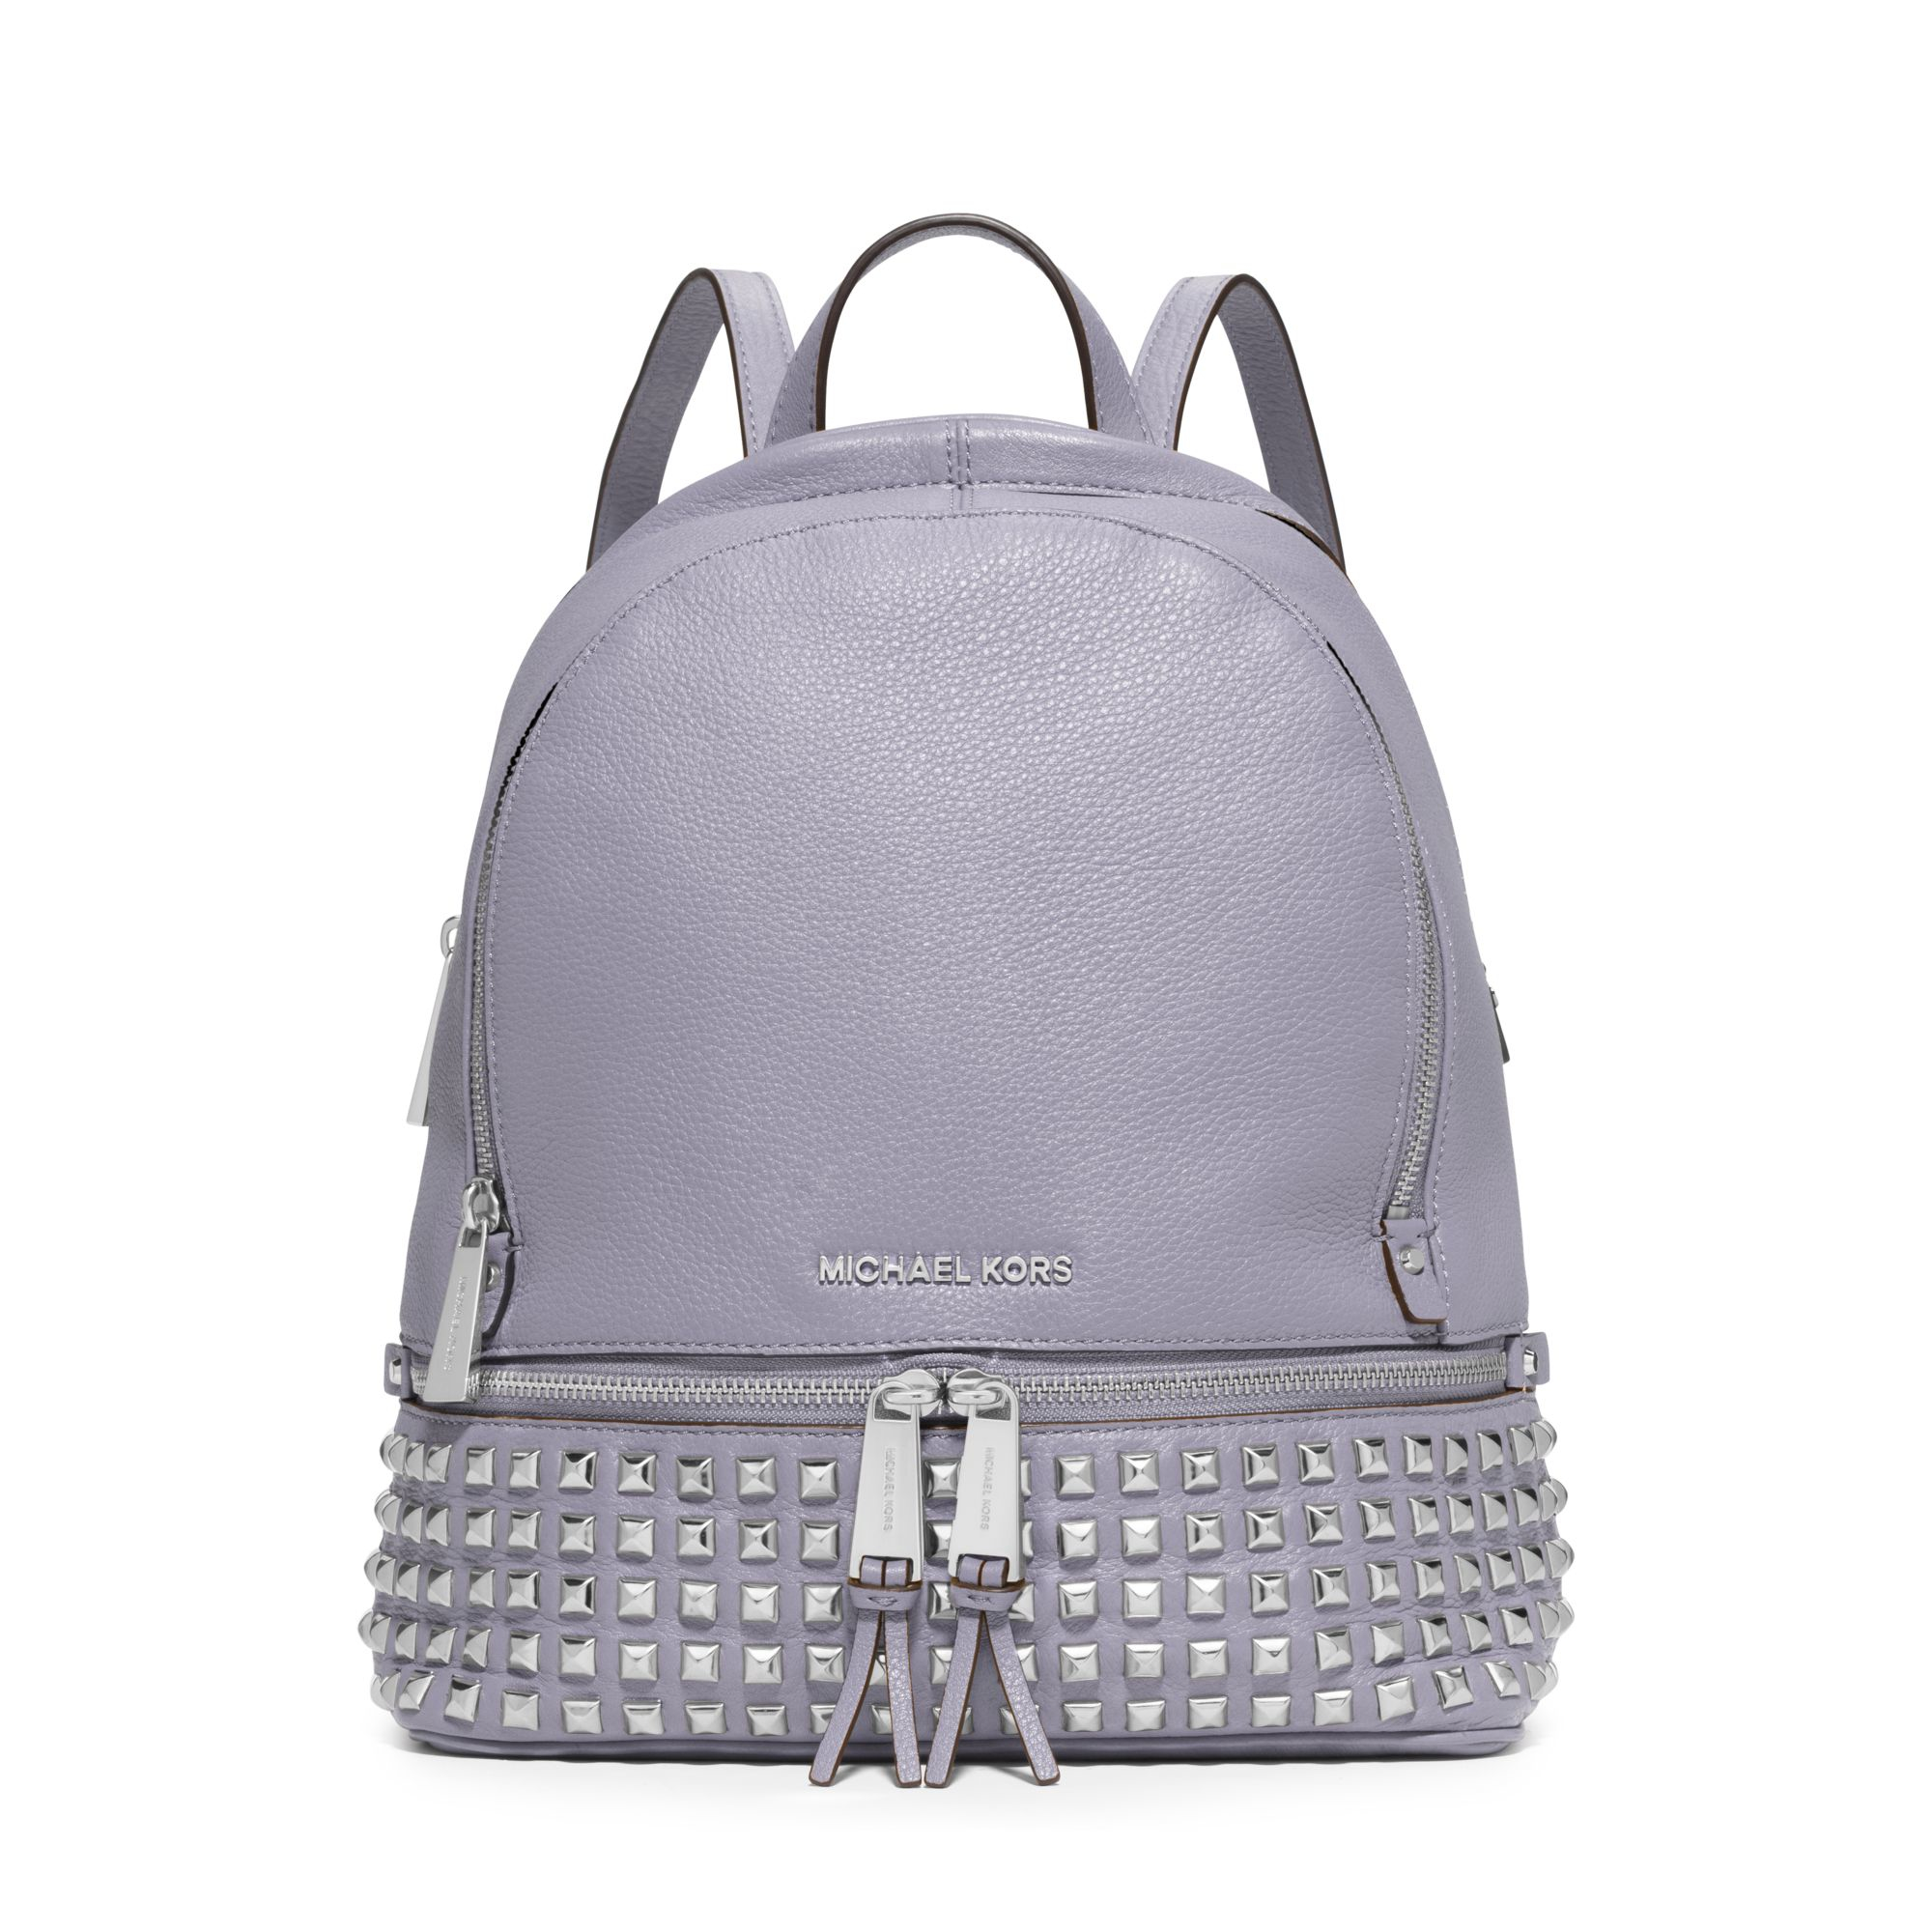 Michael kors Rhea Small Studded Leather Backpack in Gray | Lyst